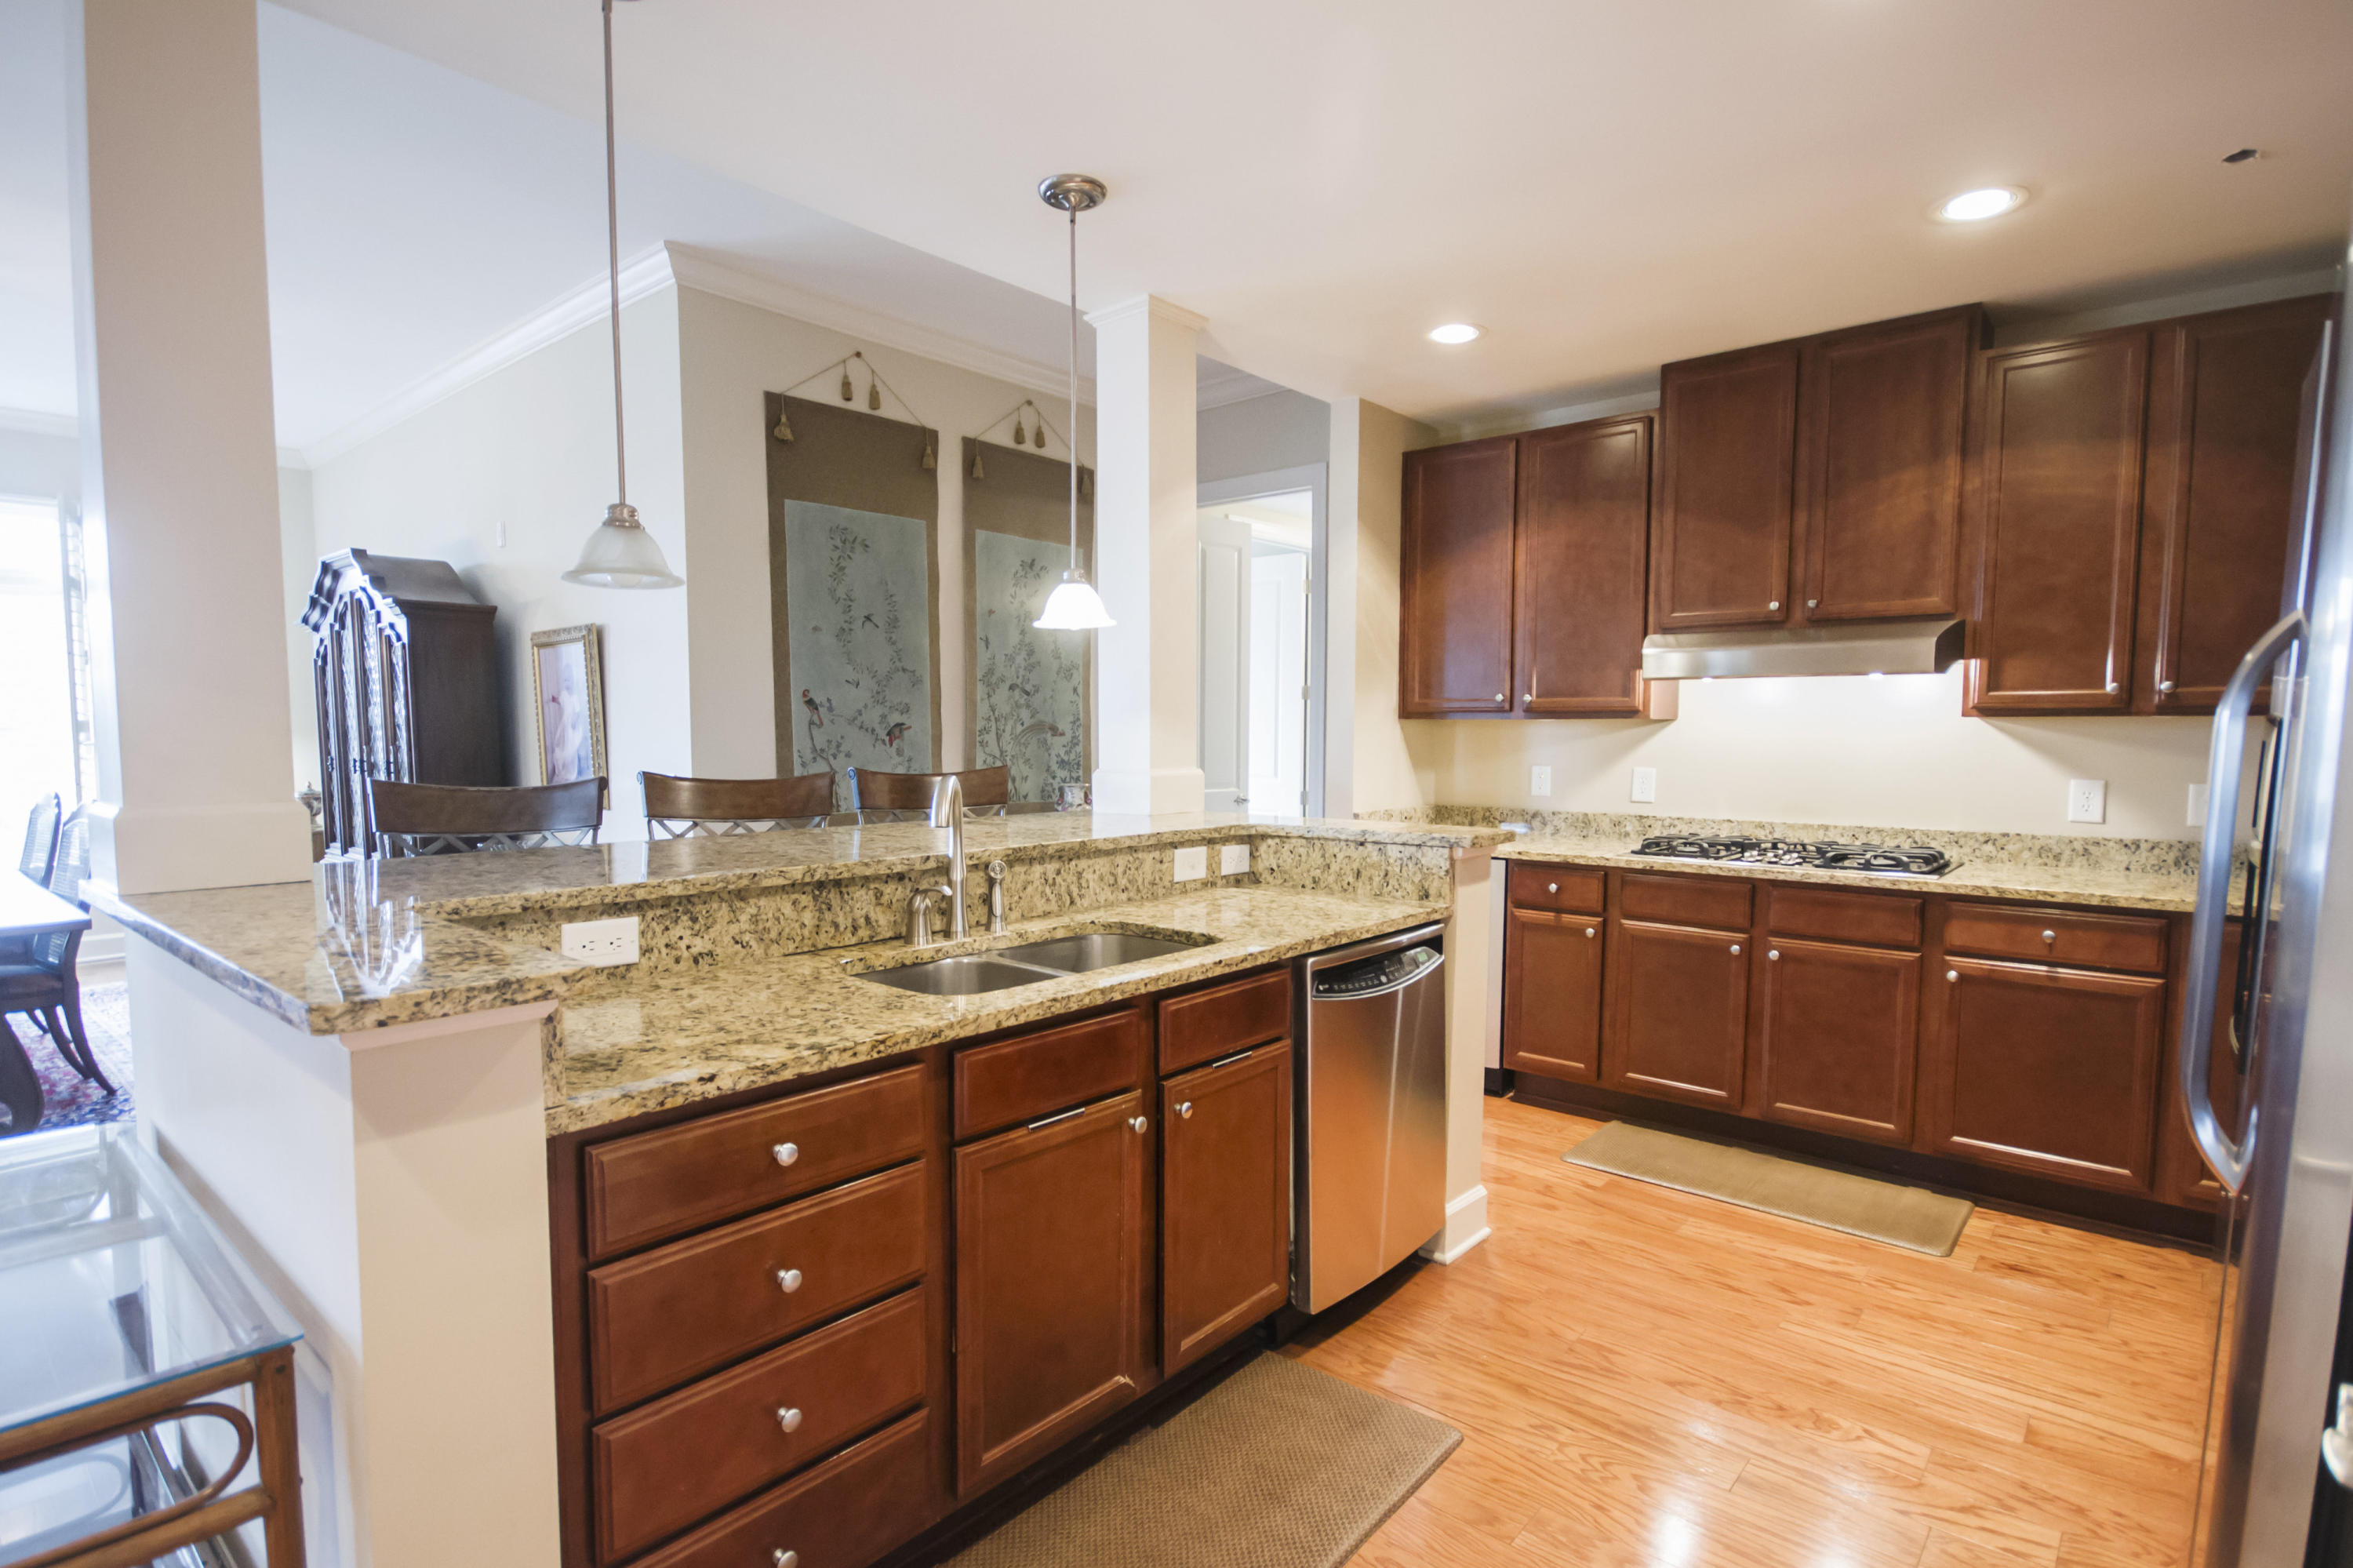 Pier View Homes For Sale - 125 Pier View, Charleston, SC - 9